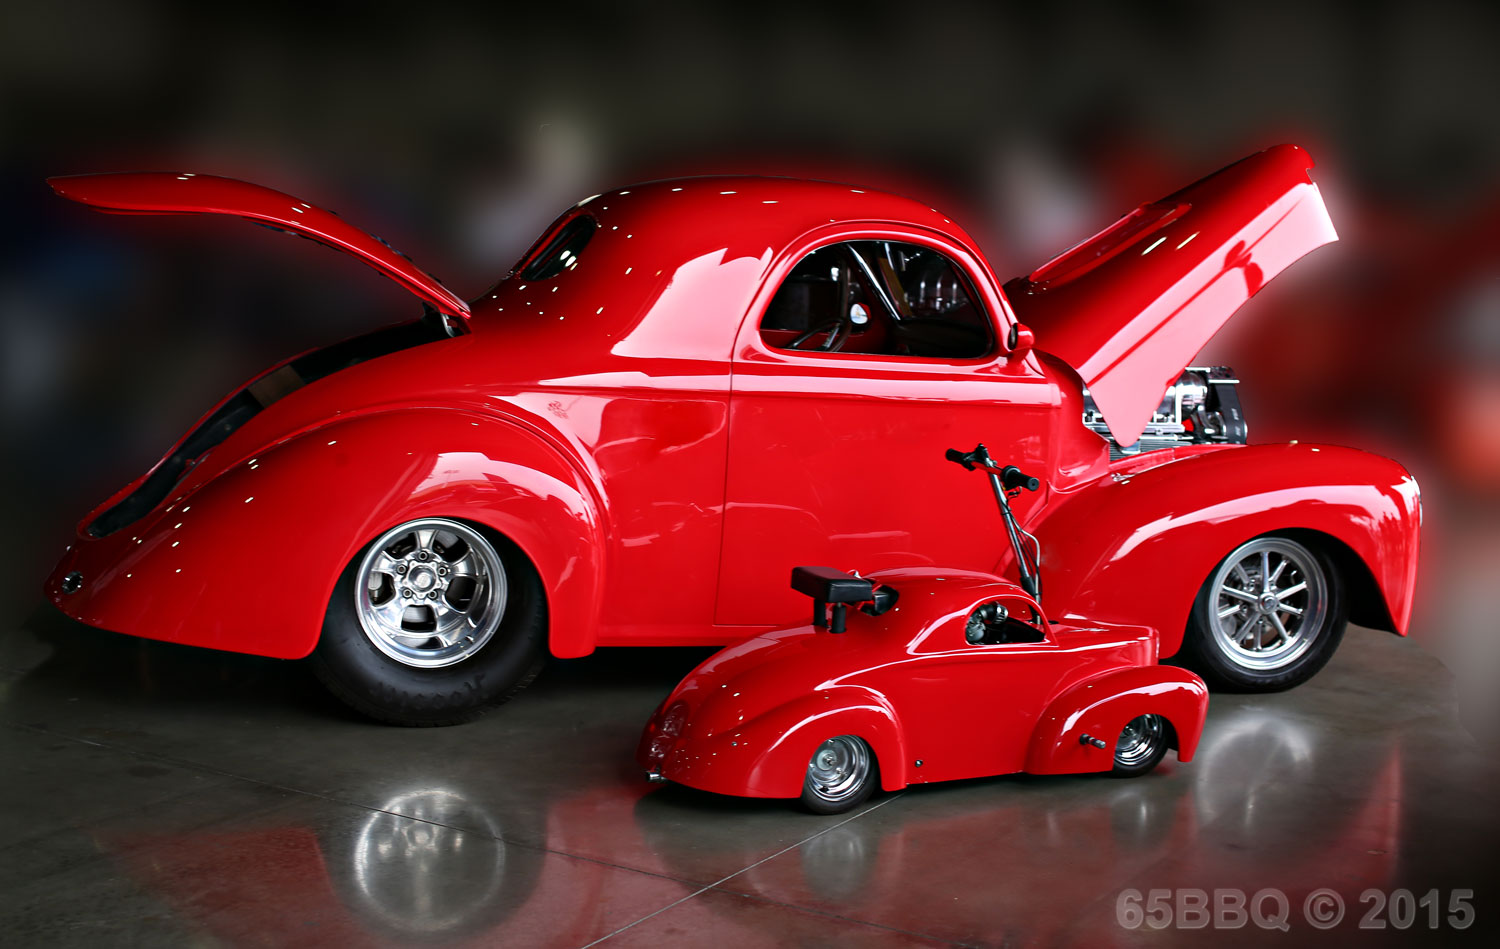 Check out Red Rides.